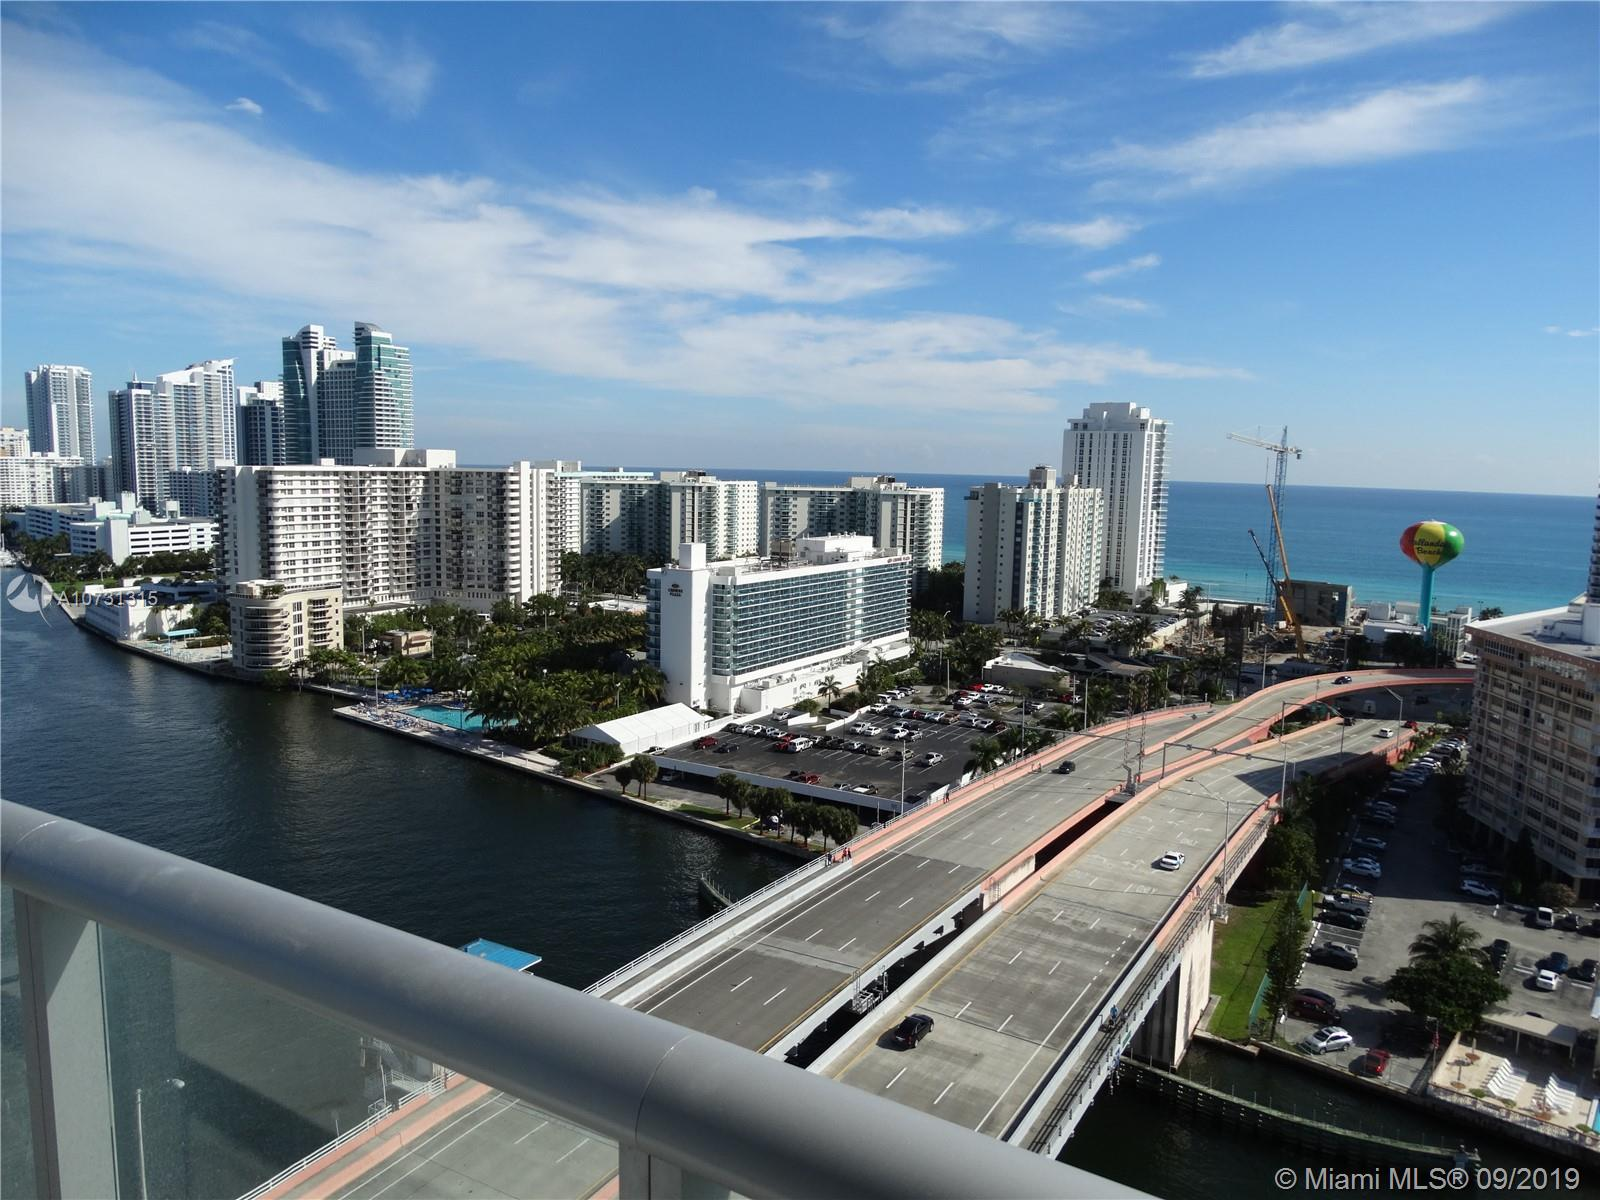 PRICED TO SELL! motivated seller! Beautiful Hallandale Beach. Beachwalk Condominium, Fabulously designed modern 3/3, condo unit with private entrance, great terrace w/glass railing, 2 infinity edge pools, one on the Roof Top! Cielo Club 34th floor, fully equipped fitness center. AIRBNB APPROVED! No Rental Restrictions.